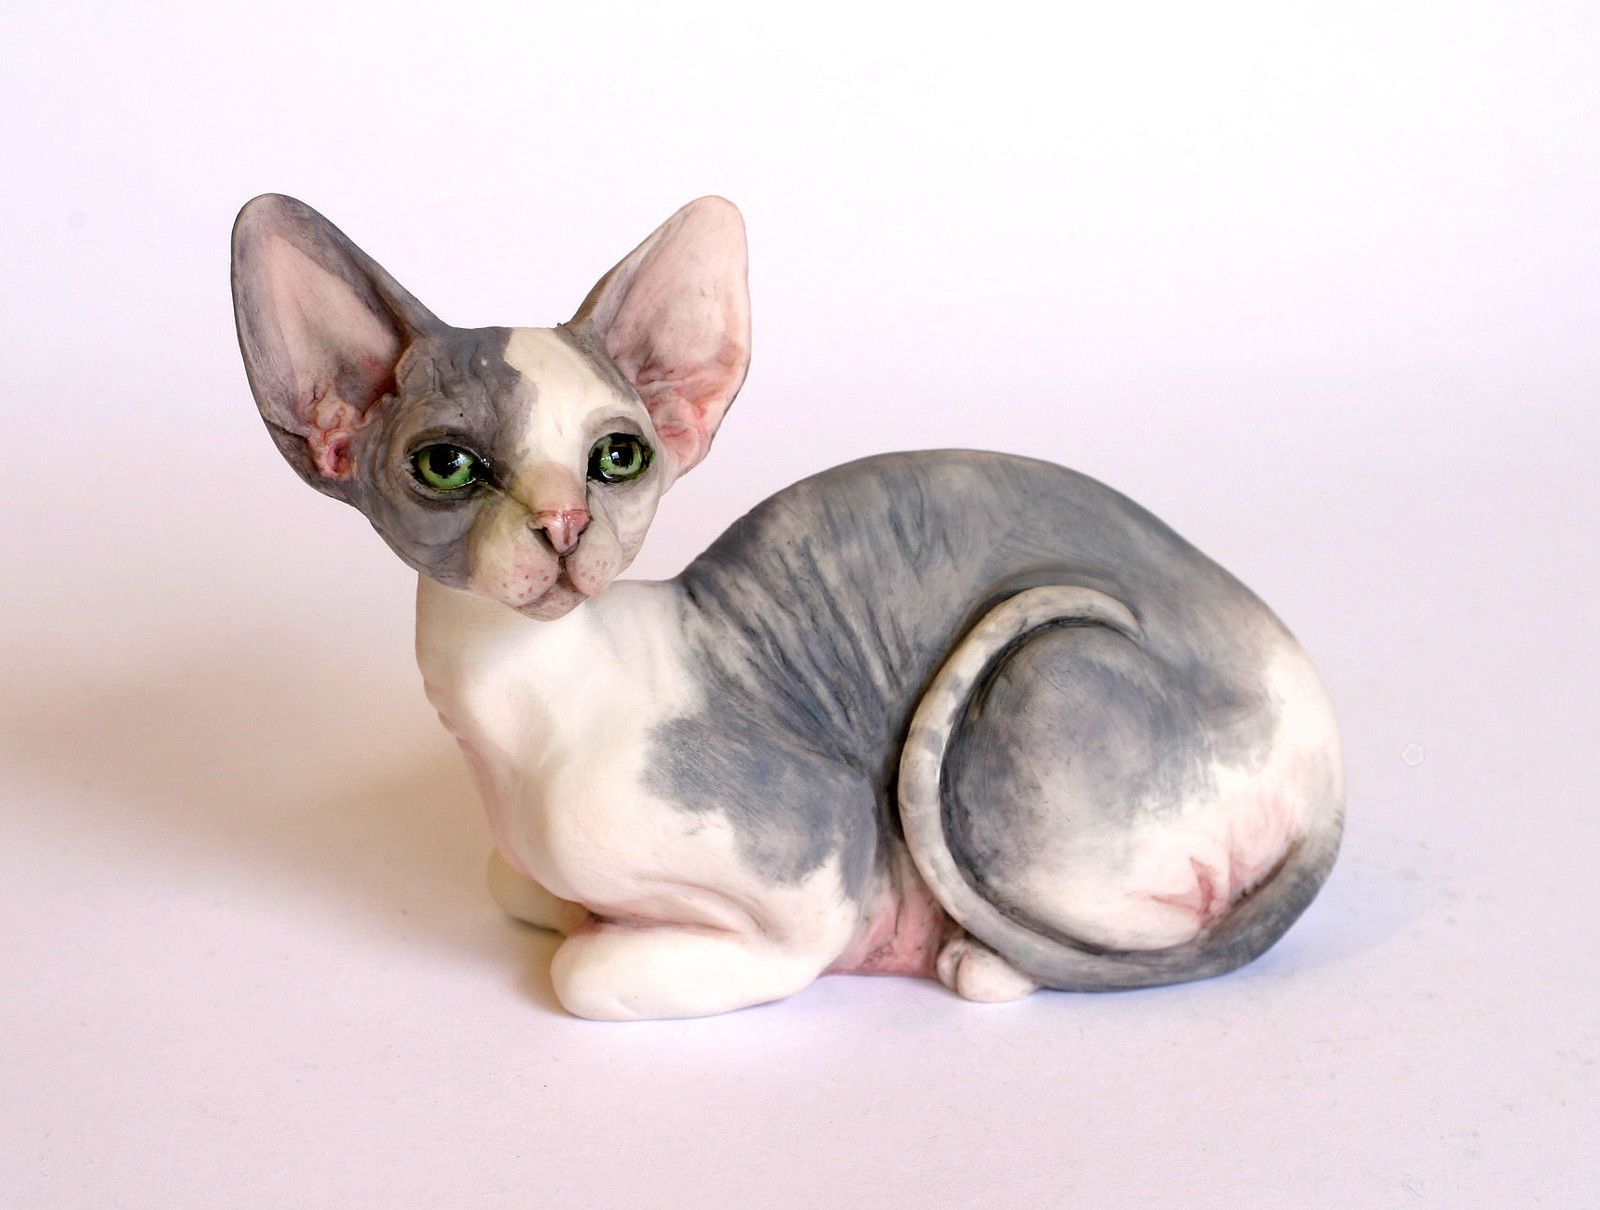 bengal kittens for sale in ny